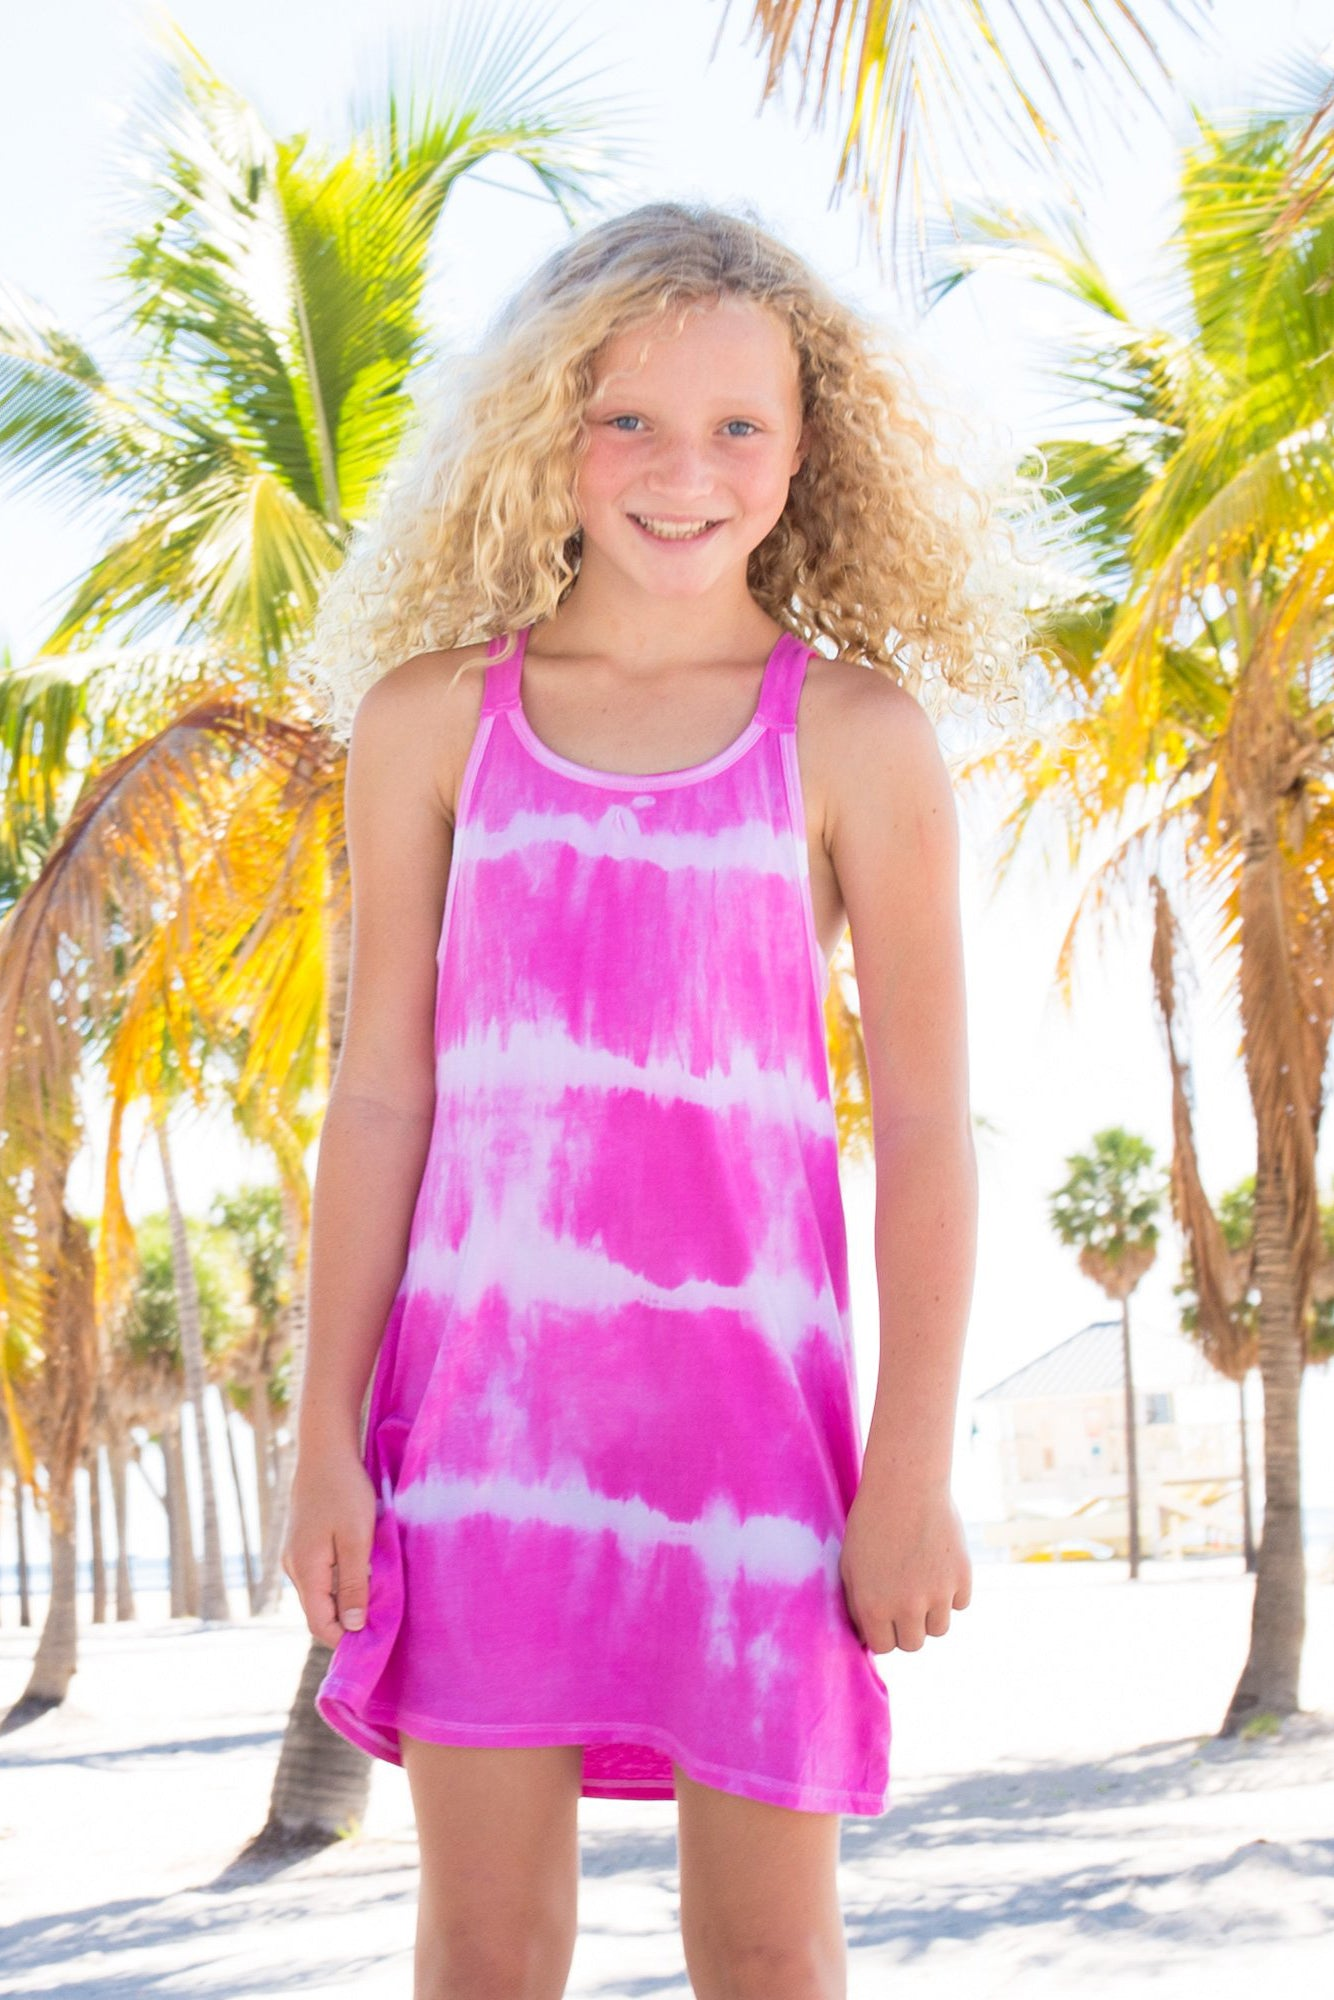 Tween blonde girl wearing a pink tie dye swim cover up dress behind palm trees